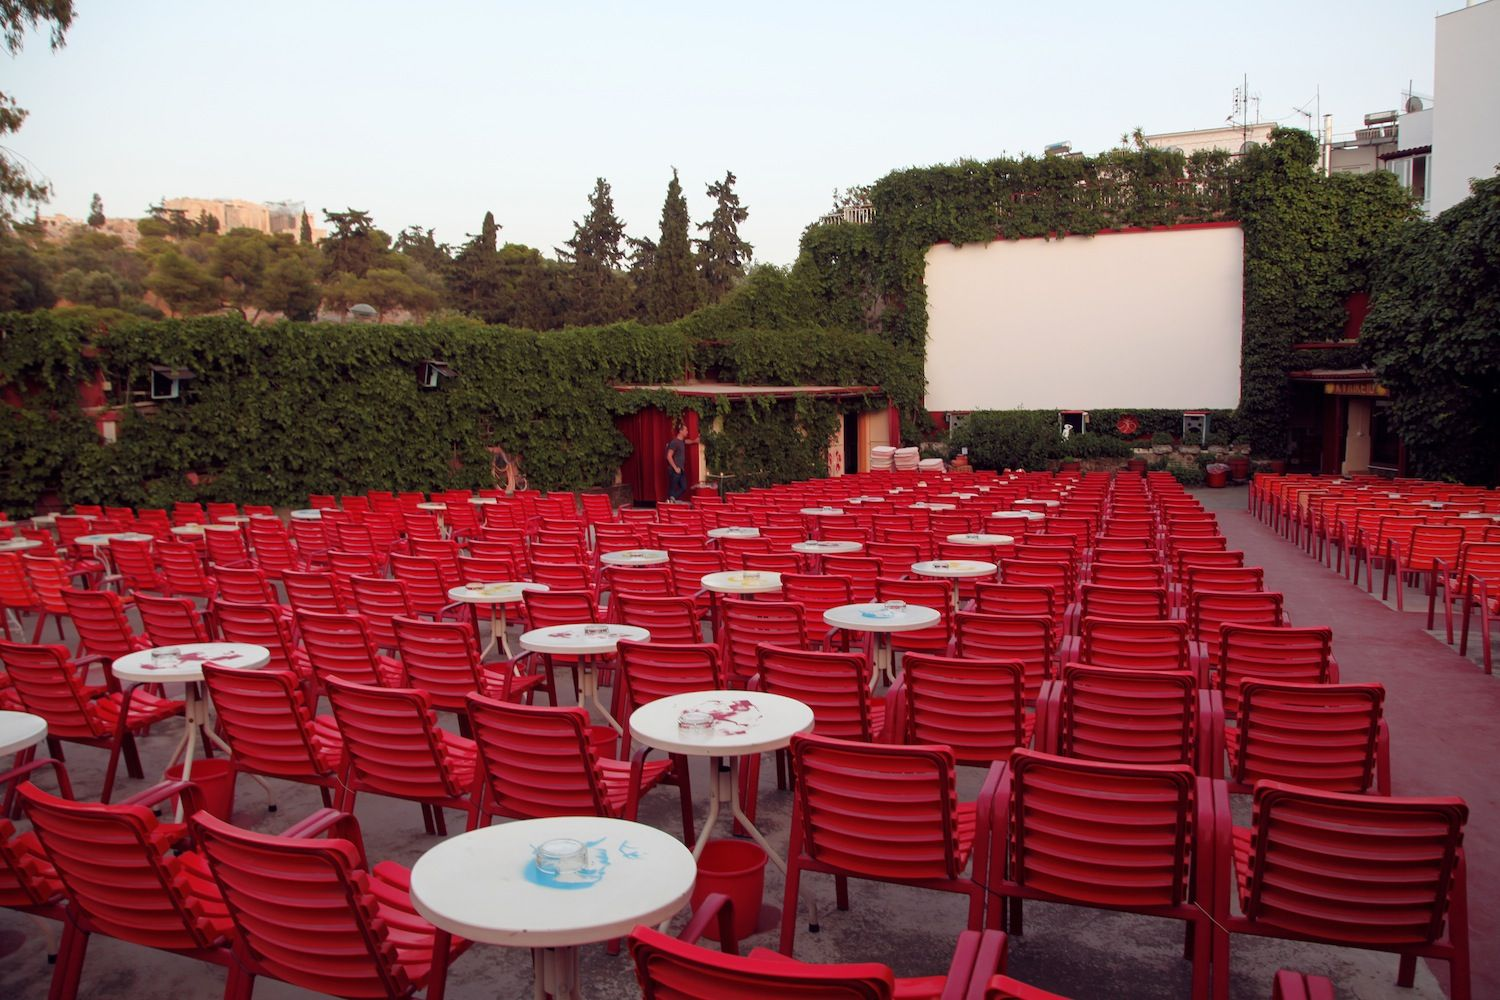 Thisseio openair cinema. With a direct view of the